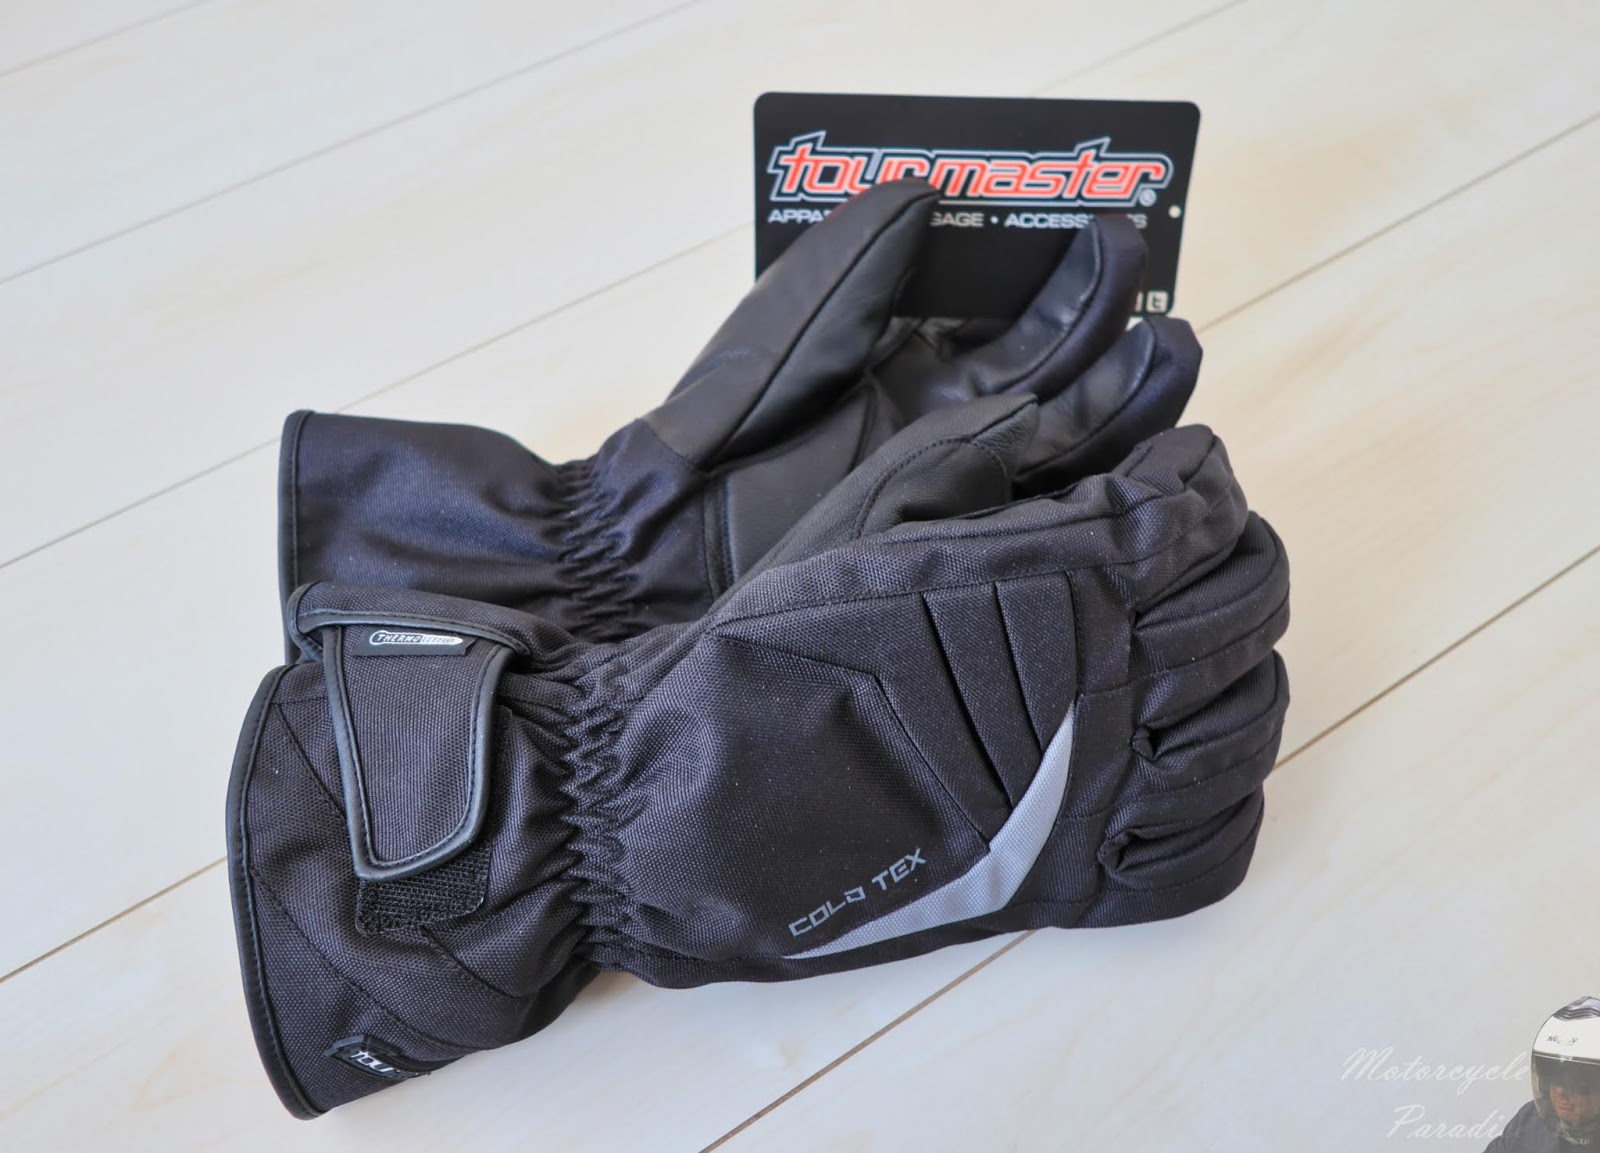 Tourmaster Cold-Tex 3.0 Gloves review